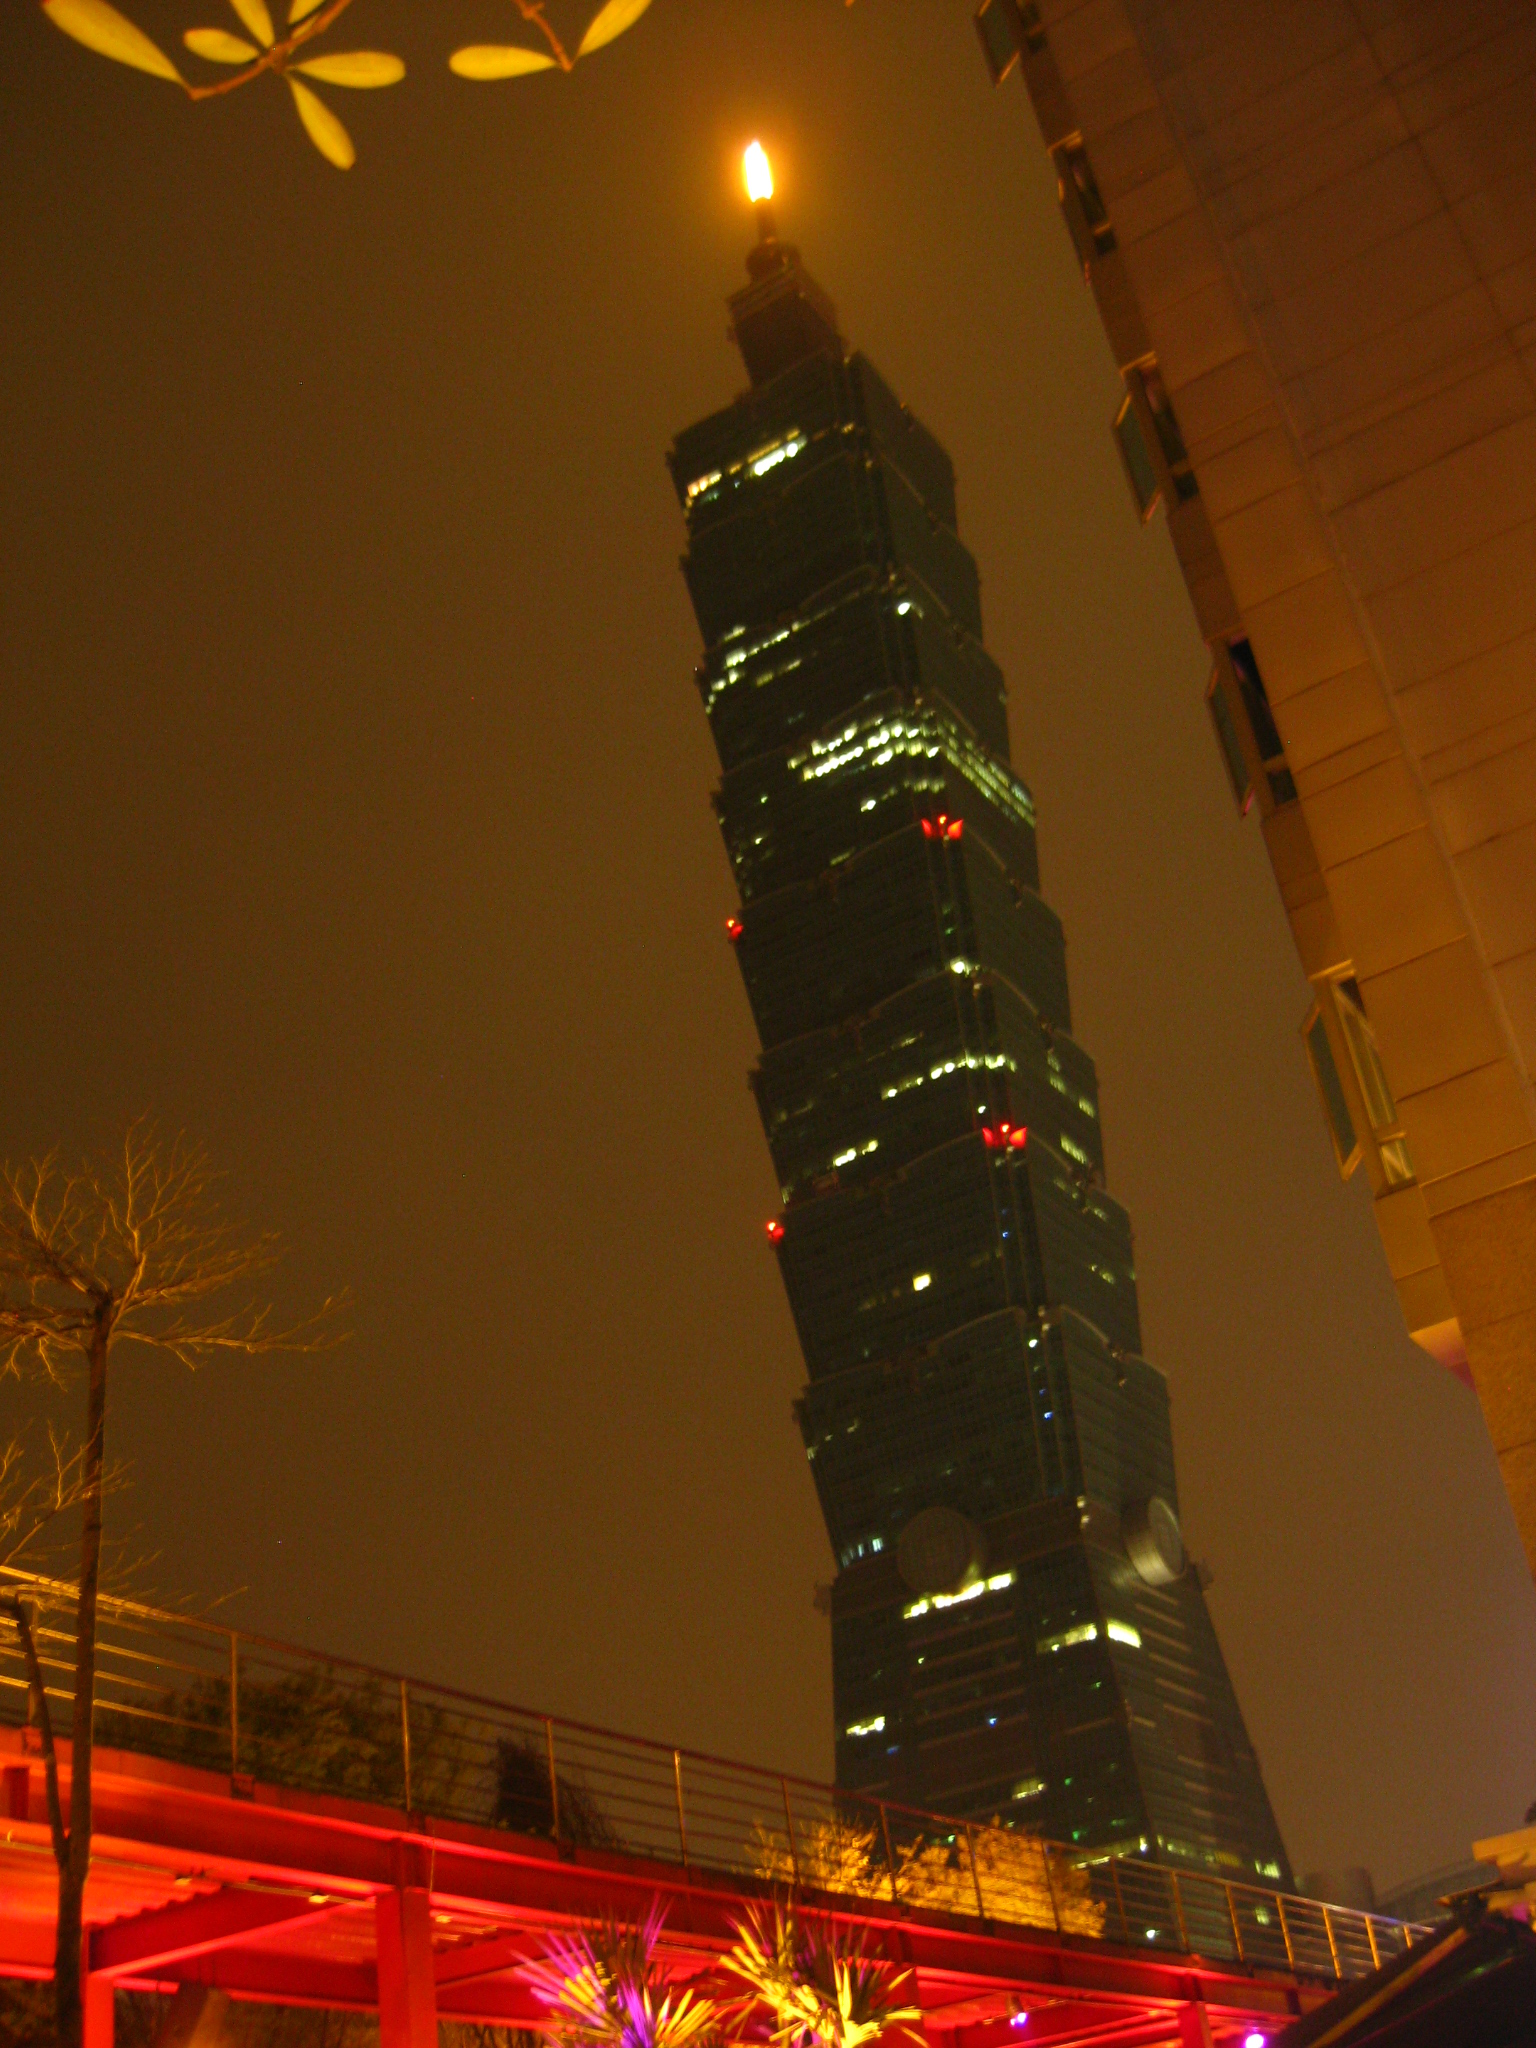 101 Best Ongles Images On Pinterest: Top Ten Things To Do In Taipei, Taiwan